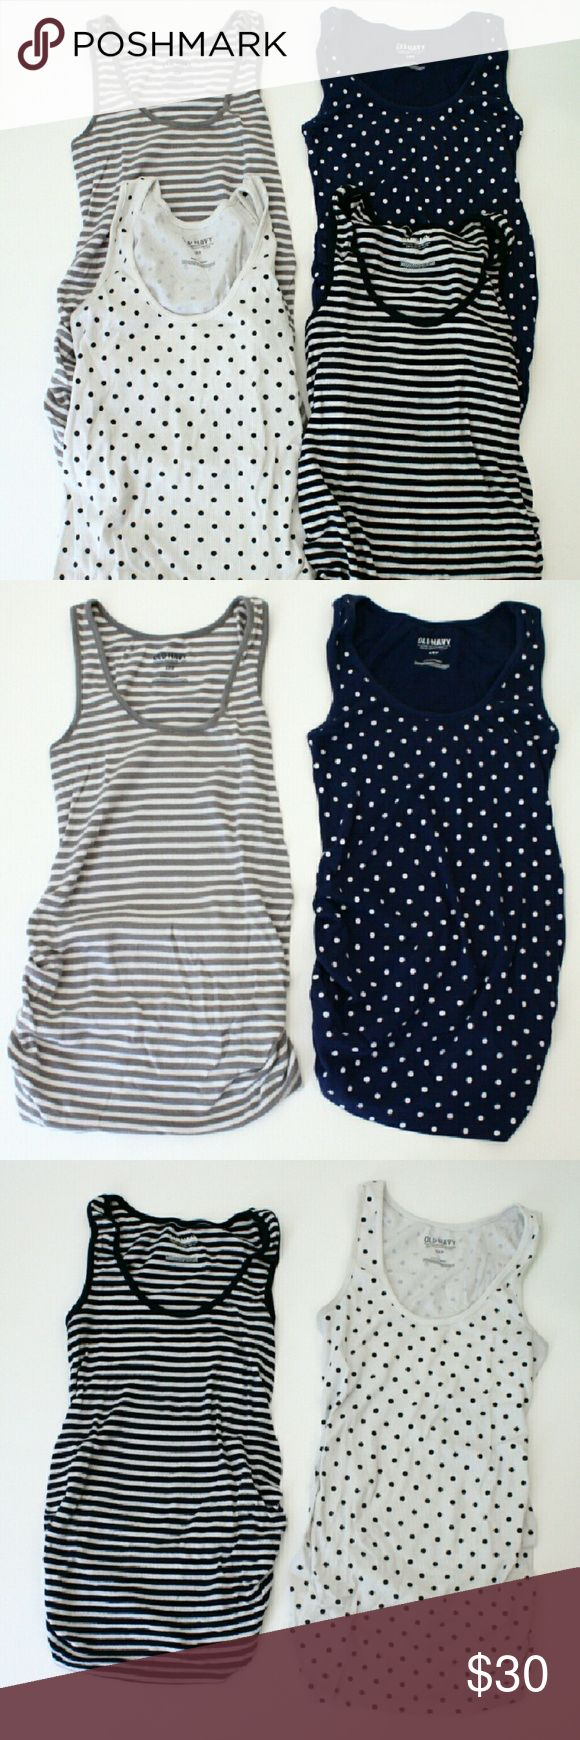 Bundle of Maternity Tank Tops, Old Navy Size Small This listing is for a group of four Old Navy brand maternity ribbed tank tops, size small. All the same style in different colors/patterns: navy and white stripes, grey and white stripes, navy with white polka dots, and white with black polka dots. These were the best tank tops when I was pregnant! Super soft and stretchy, long length for full coverage, ruched sides so I wore them from when I first started showing up to full term! Minor…